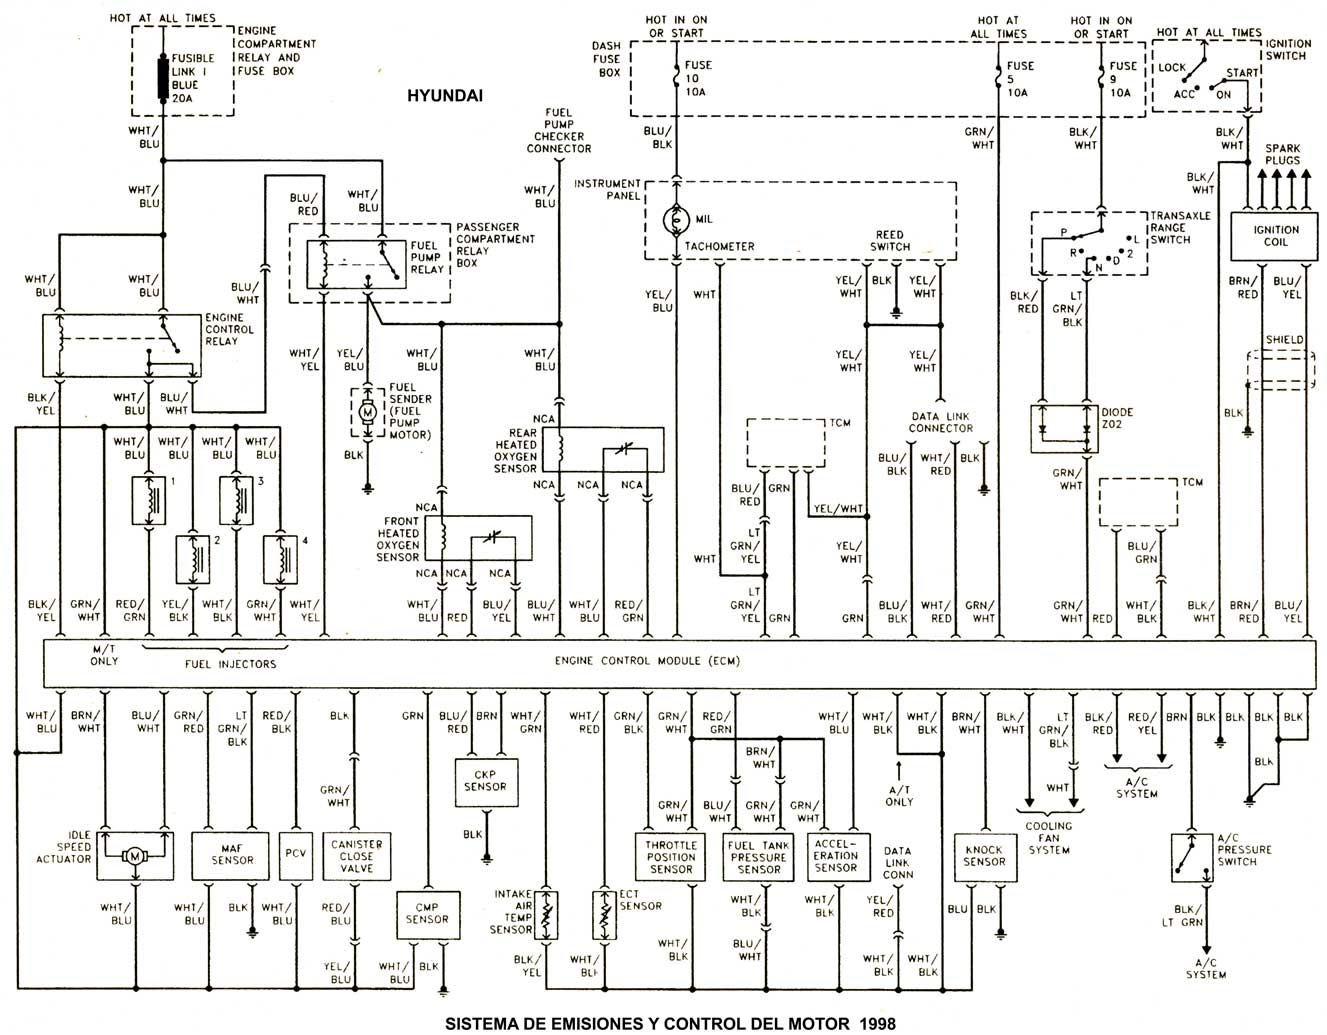 Wiring Diagram For 2003 Dodge Grand Caravan 1997 Ac Library Hyundai 1986 97 Diagramas Esquemas Ubicacion De